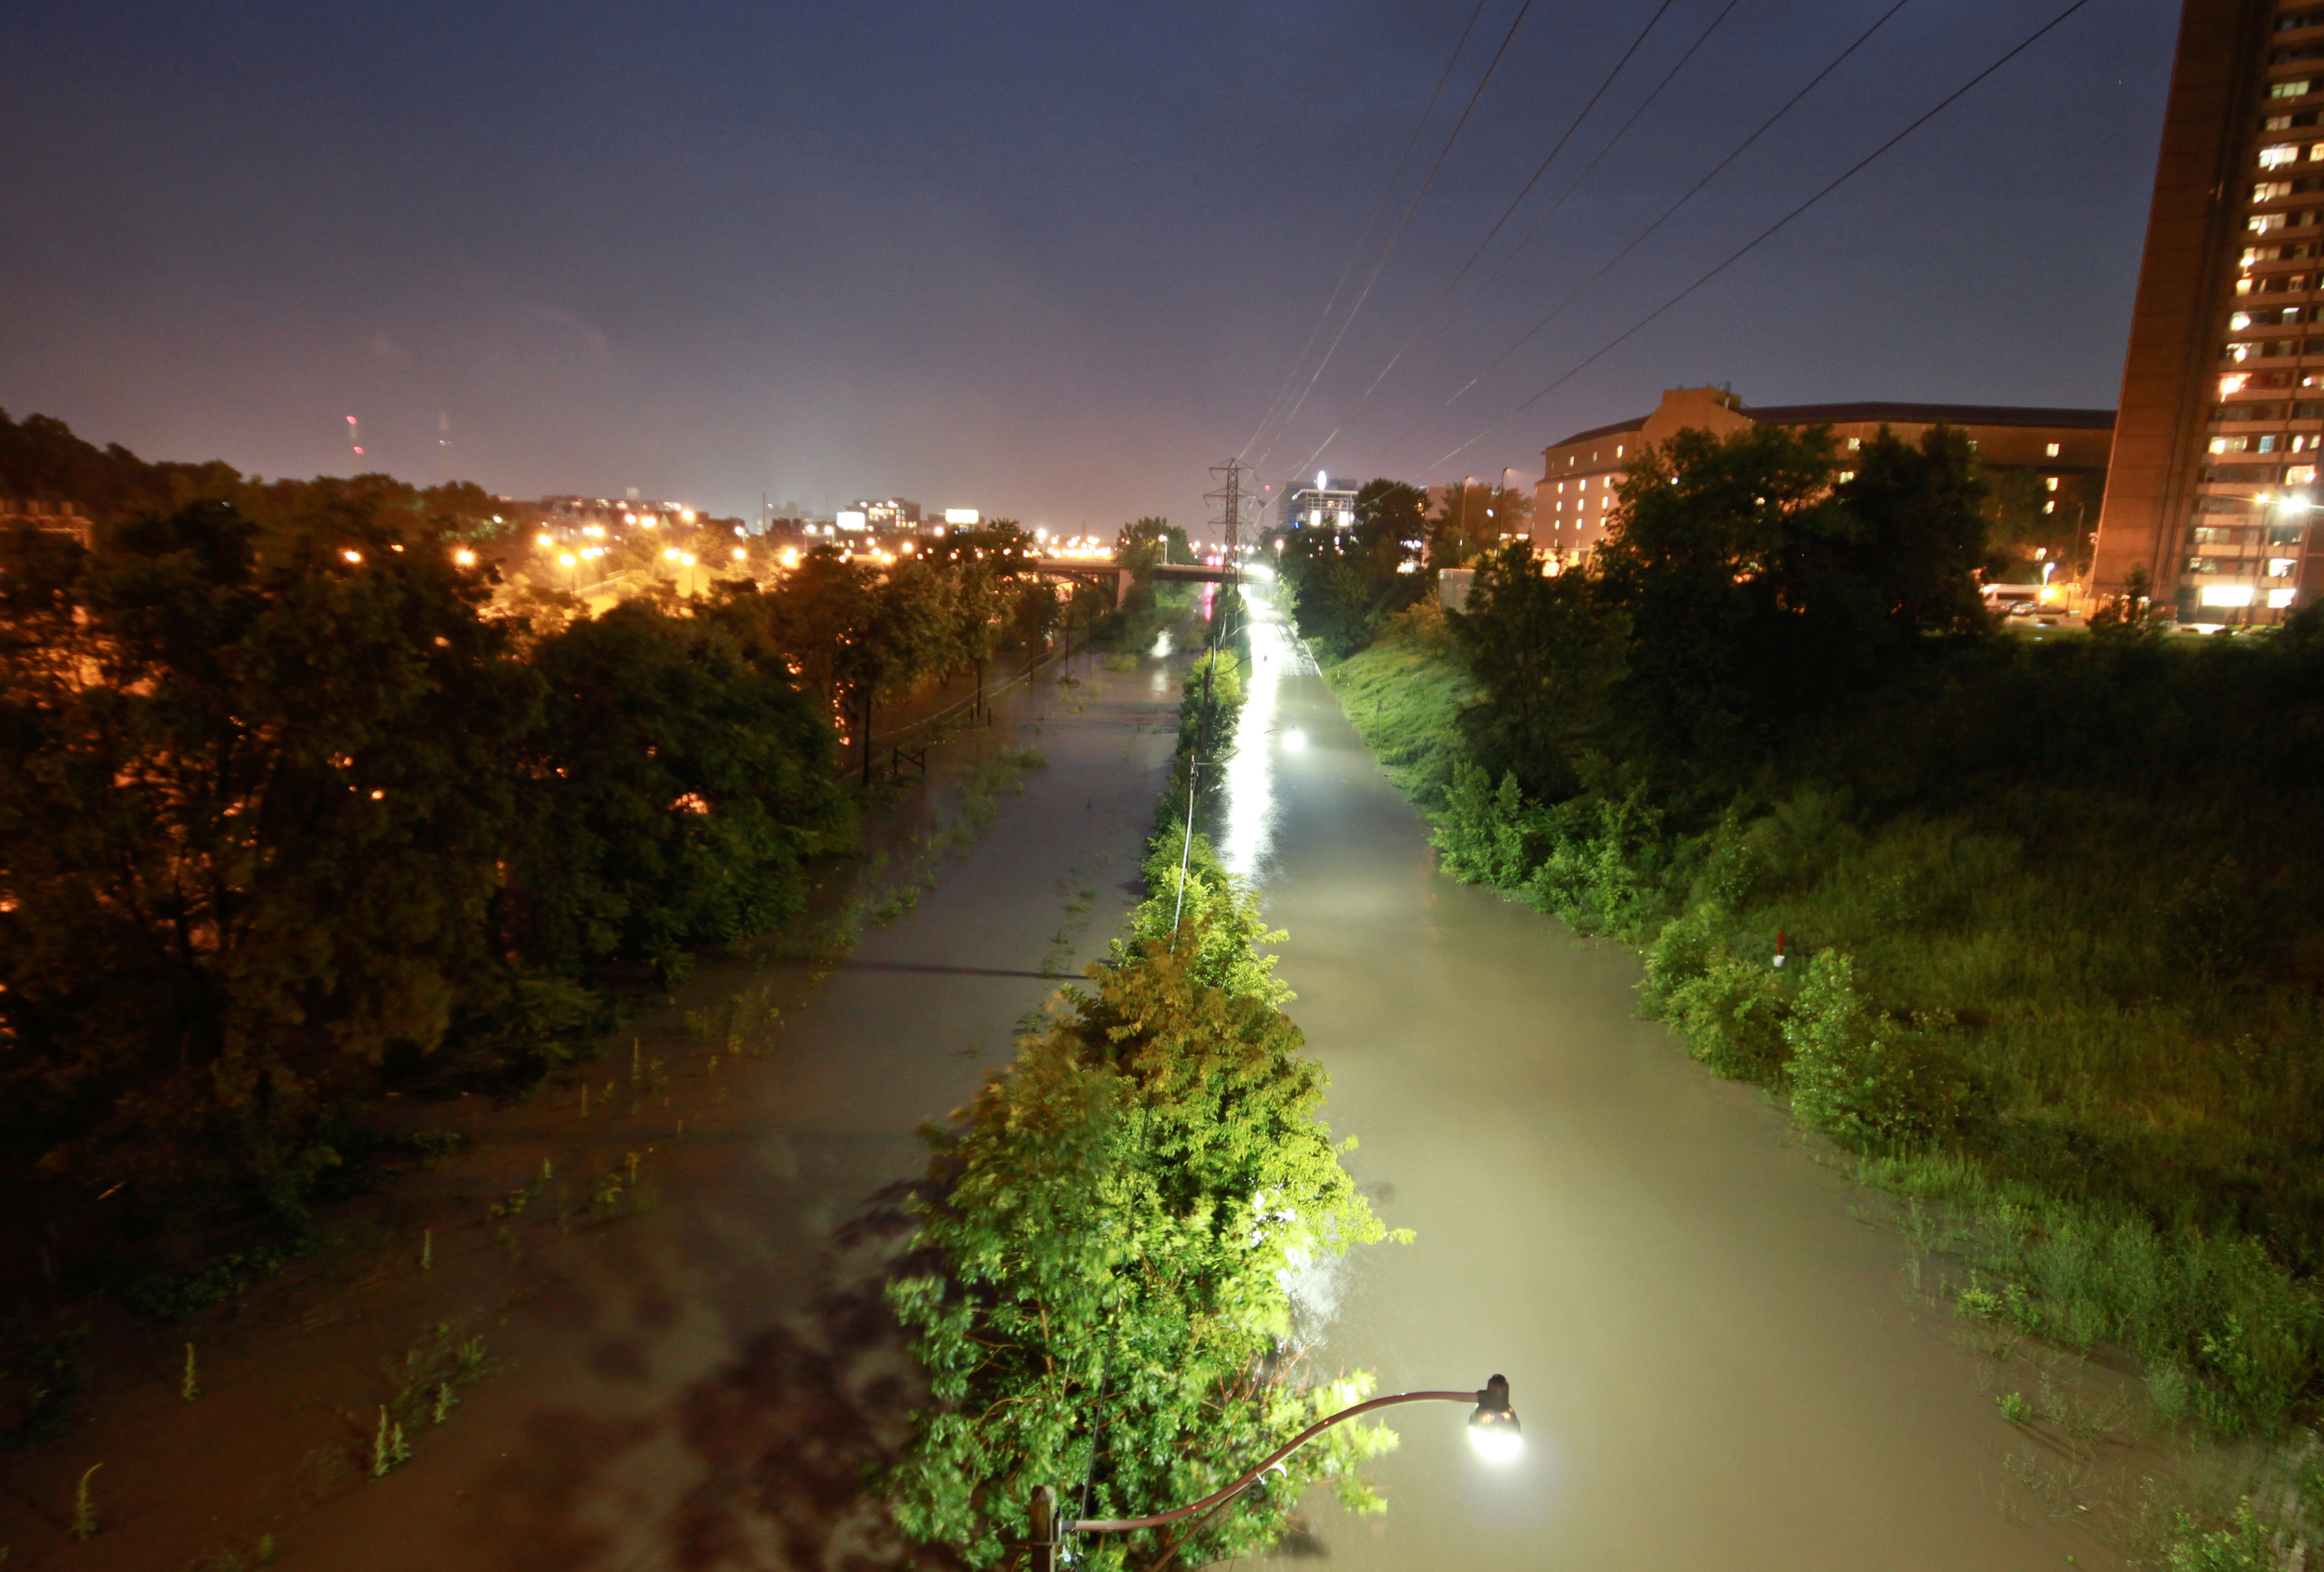 Bayview Ave under water after record breaking rainfall in Toronto. Photo by Roozbeh Rokni .